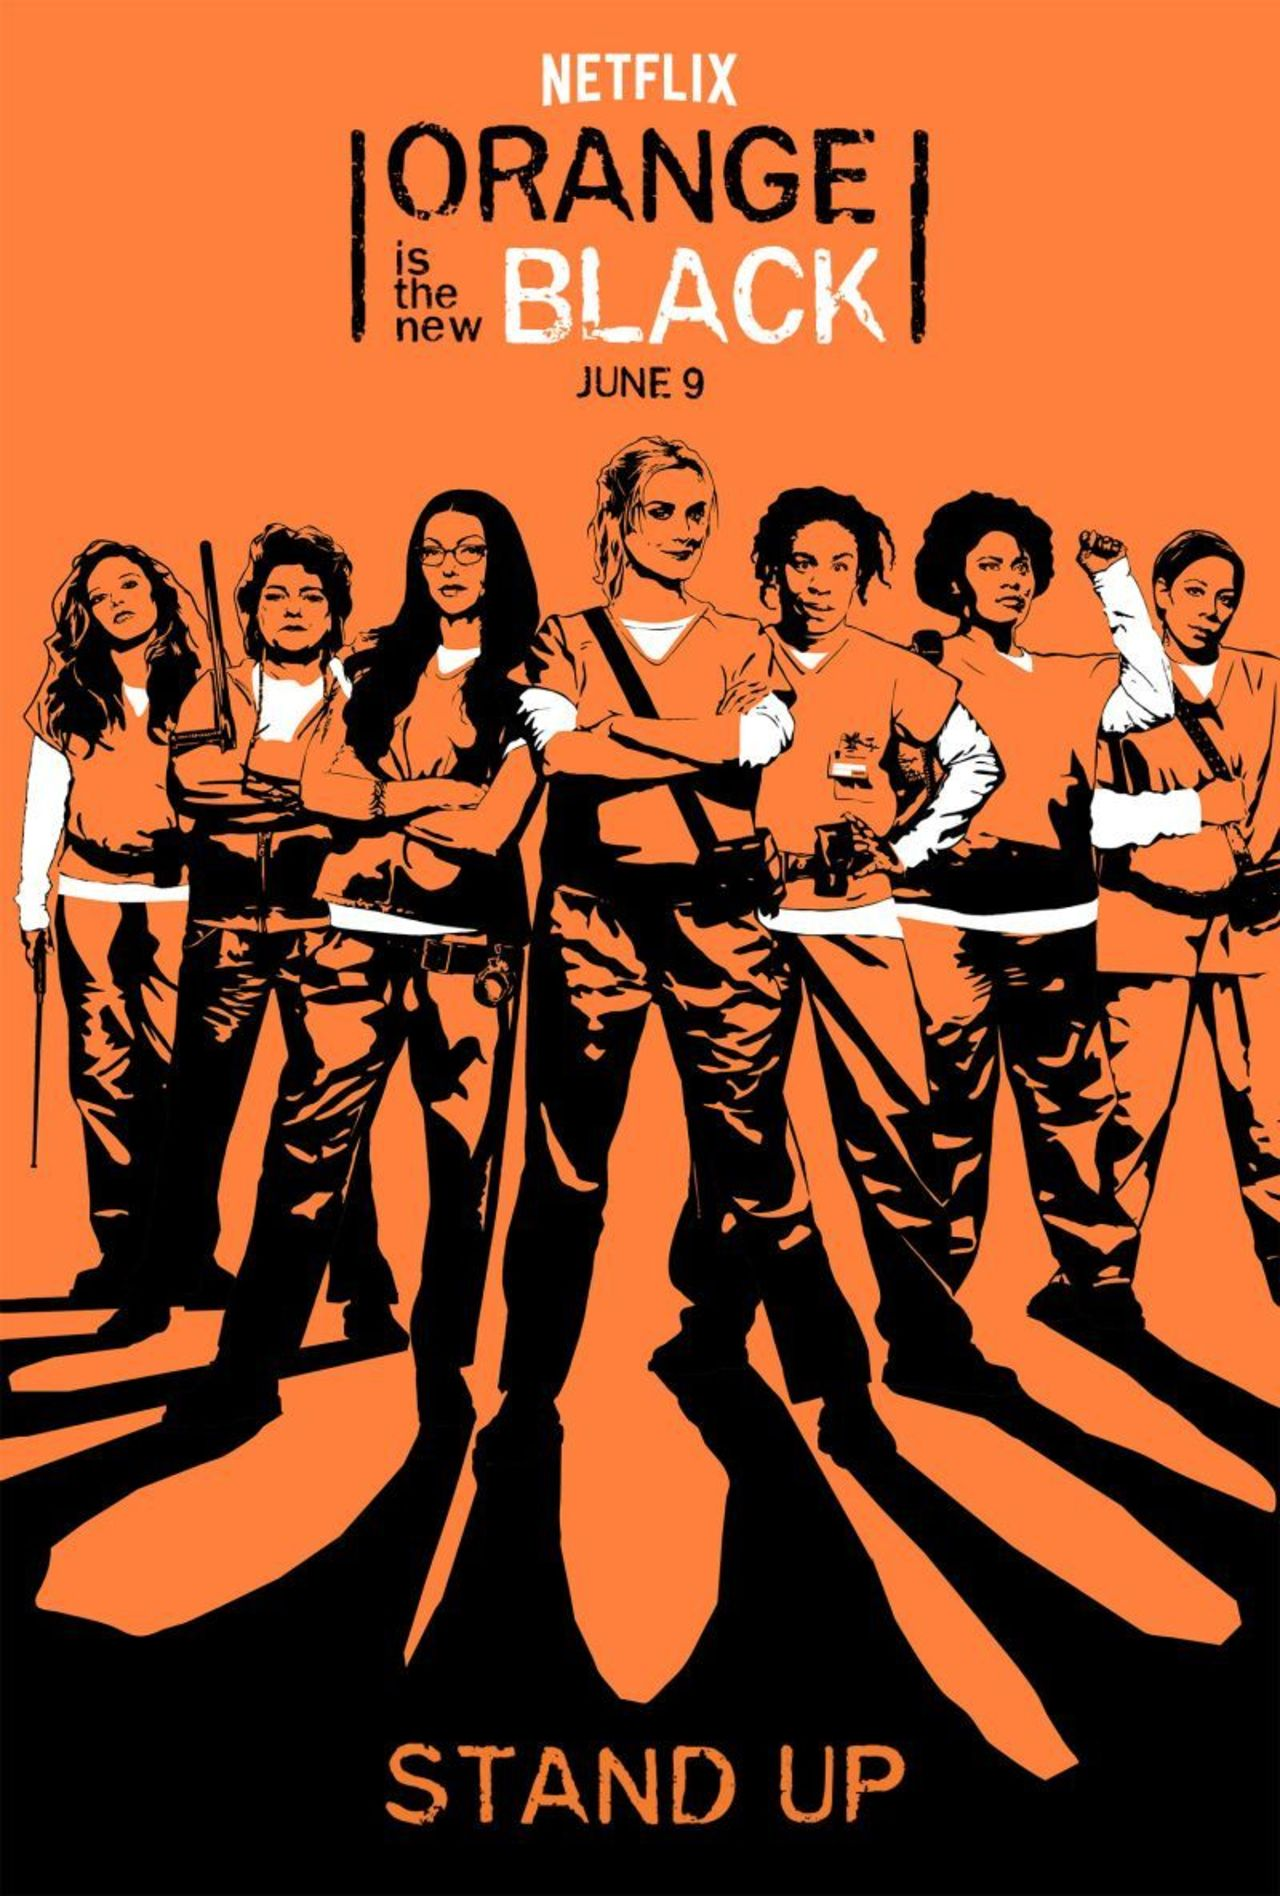 Cartel de la temporada 5 de Orange is the new black